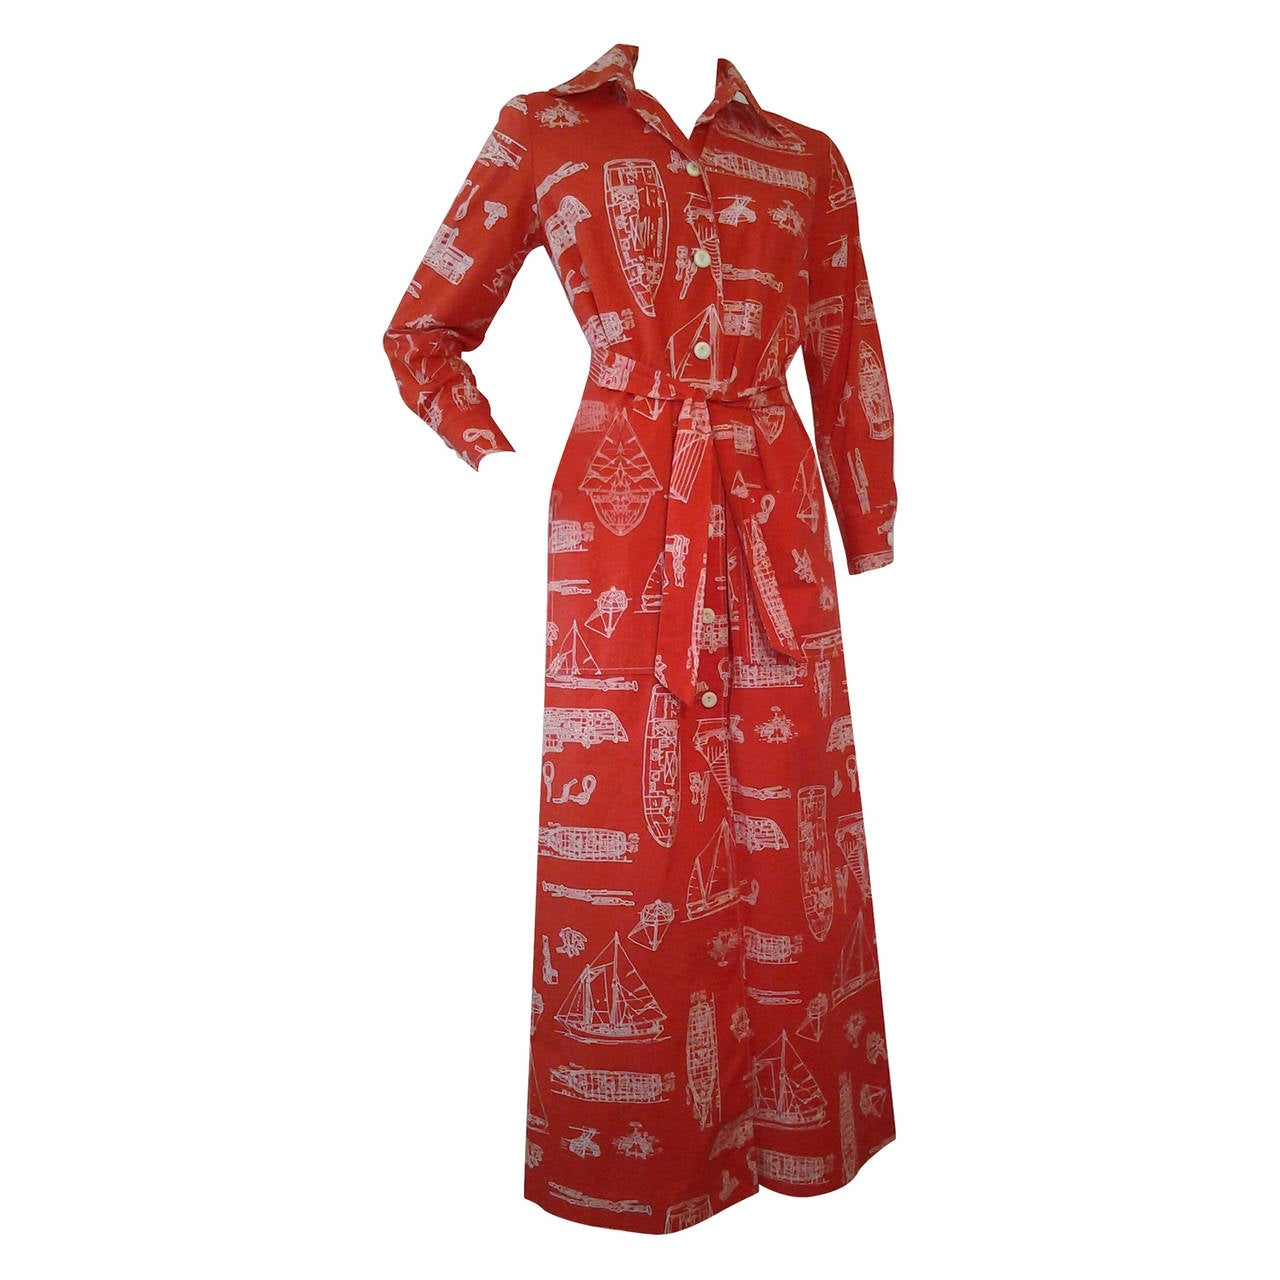 1960s Tori Richard Hawaiian Nautical Print Cotton Maxi Dress